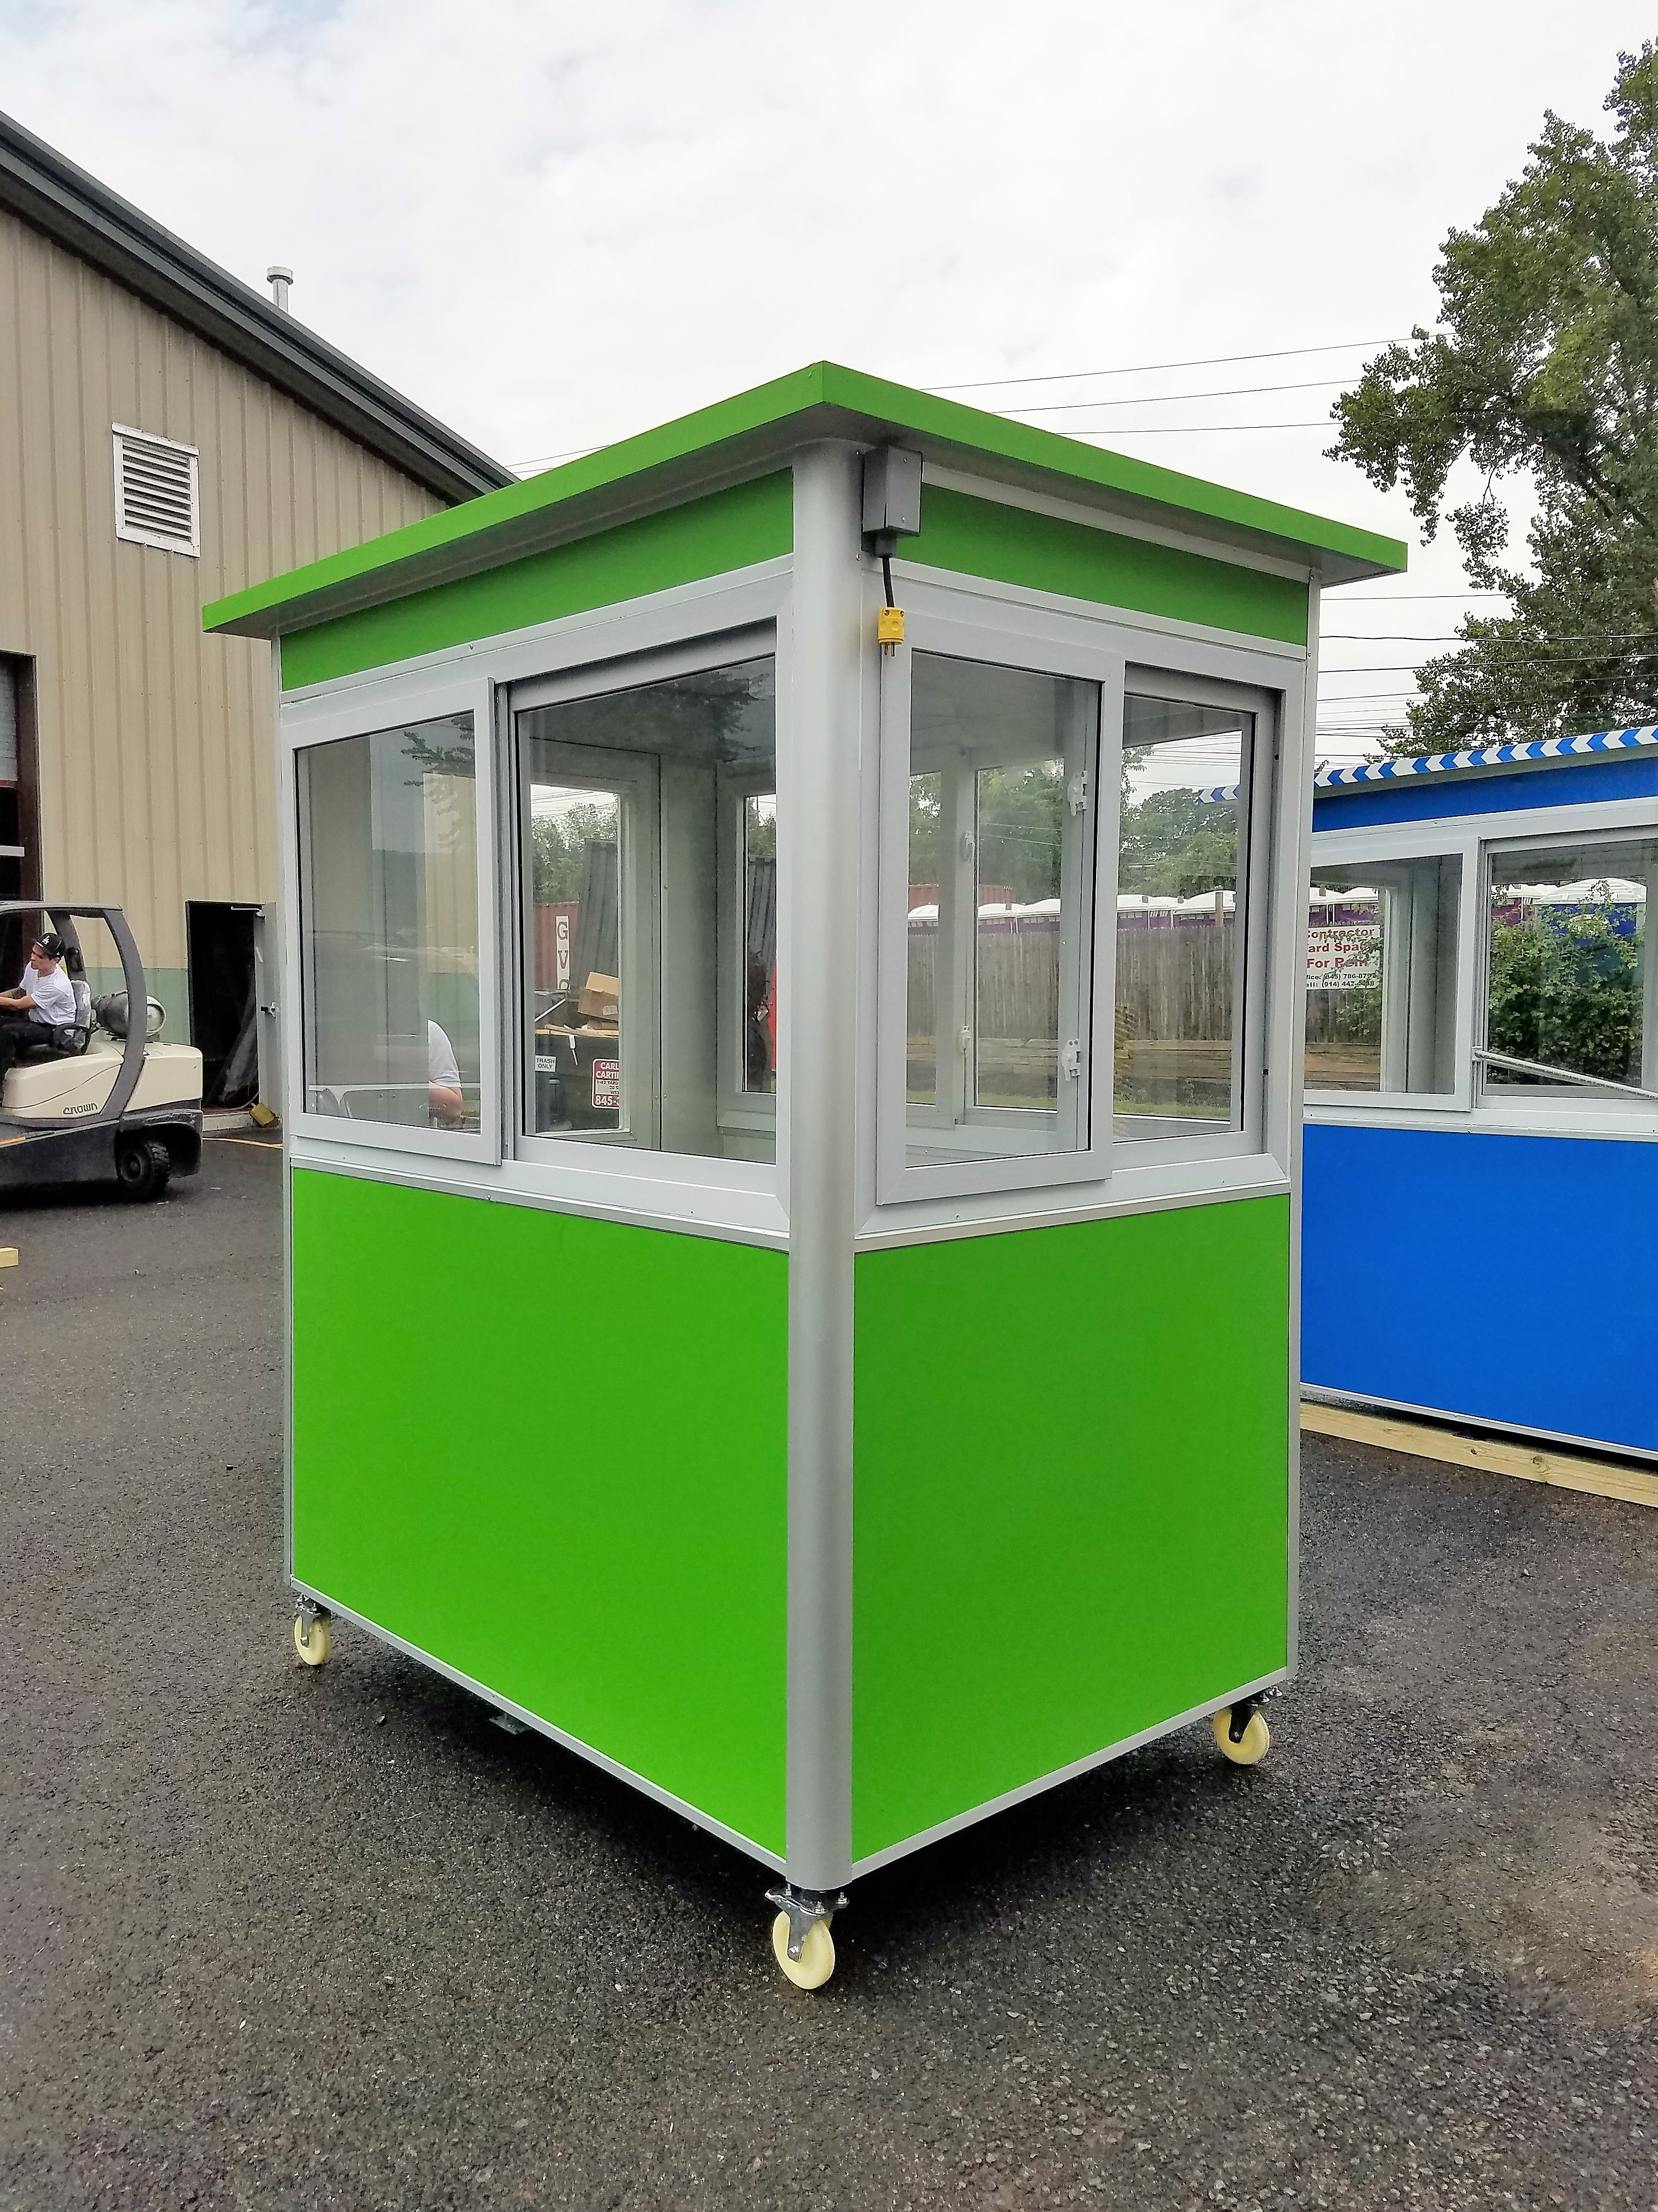 4x6 Parking Booth in Los Angeles,CA with Custom Exterior Color, Caster Wheels, Electrical Conduit Box, and Sliding Windows